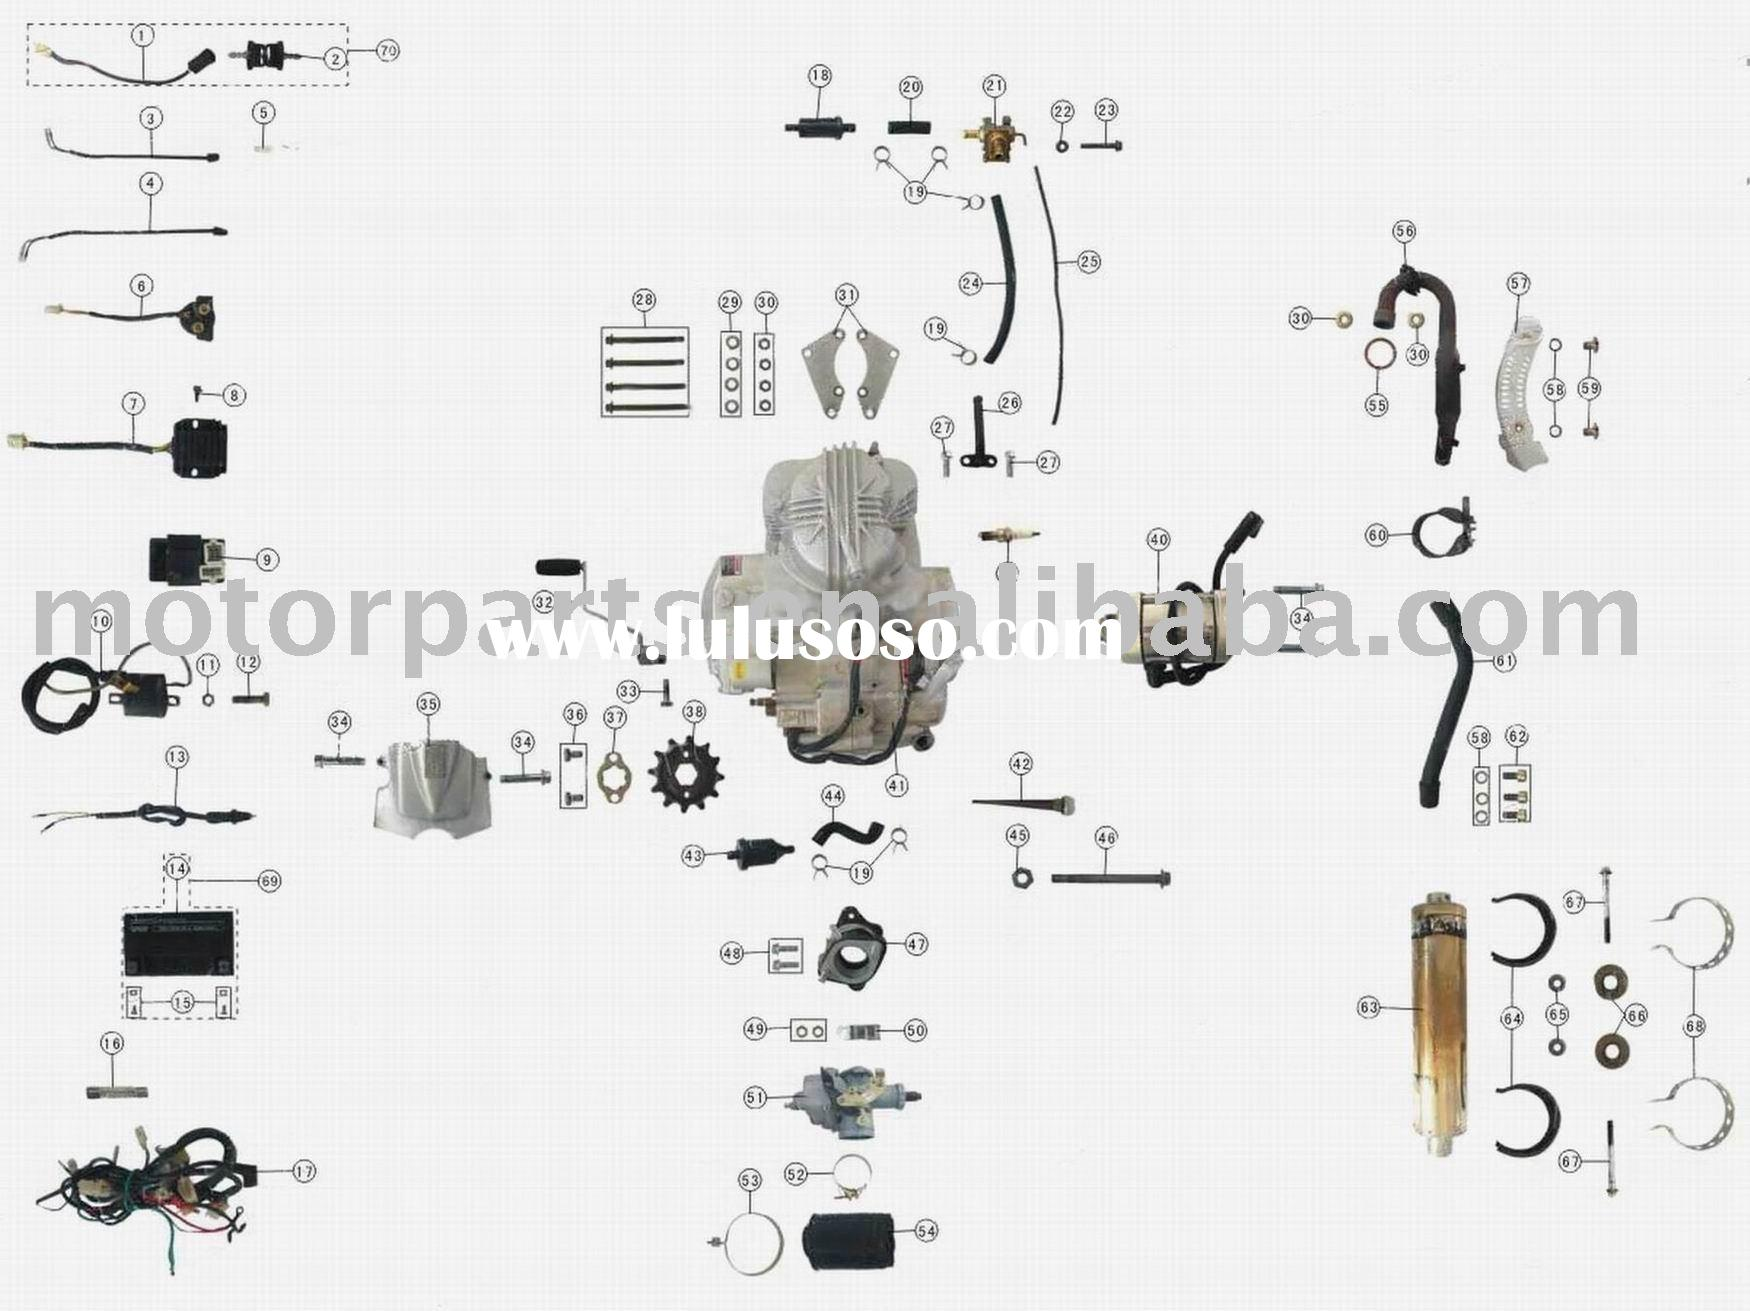 Lt 125 Suzuki 4 Wheeler Wiring Diagram, Lt, Free Engine